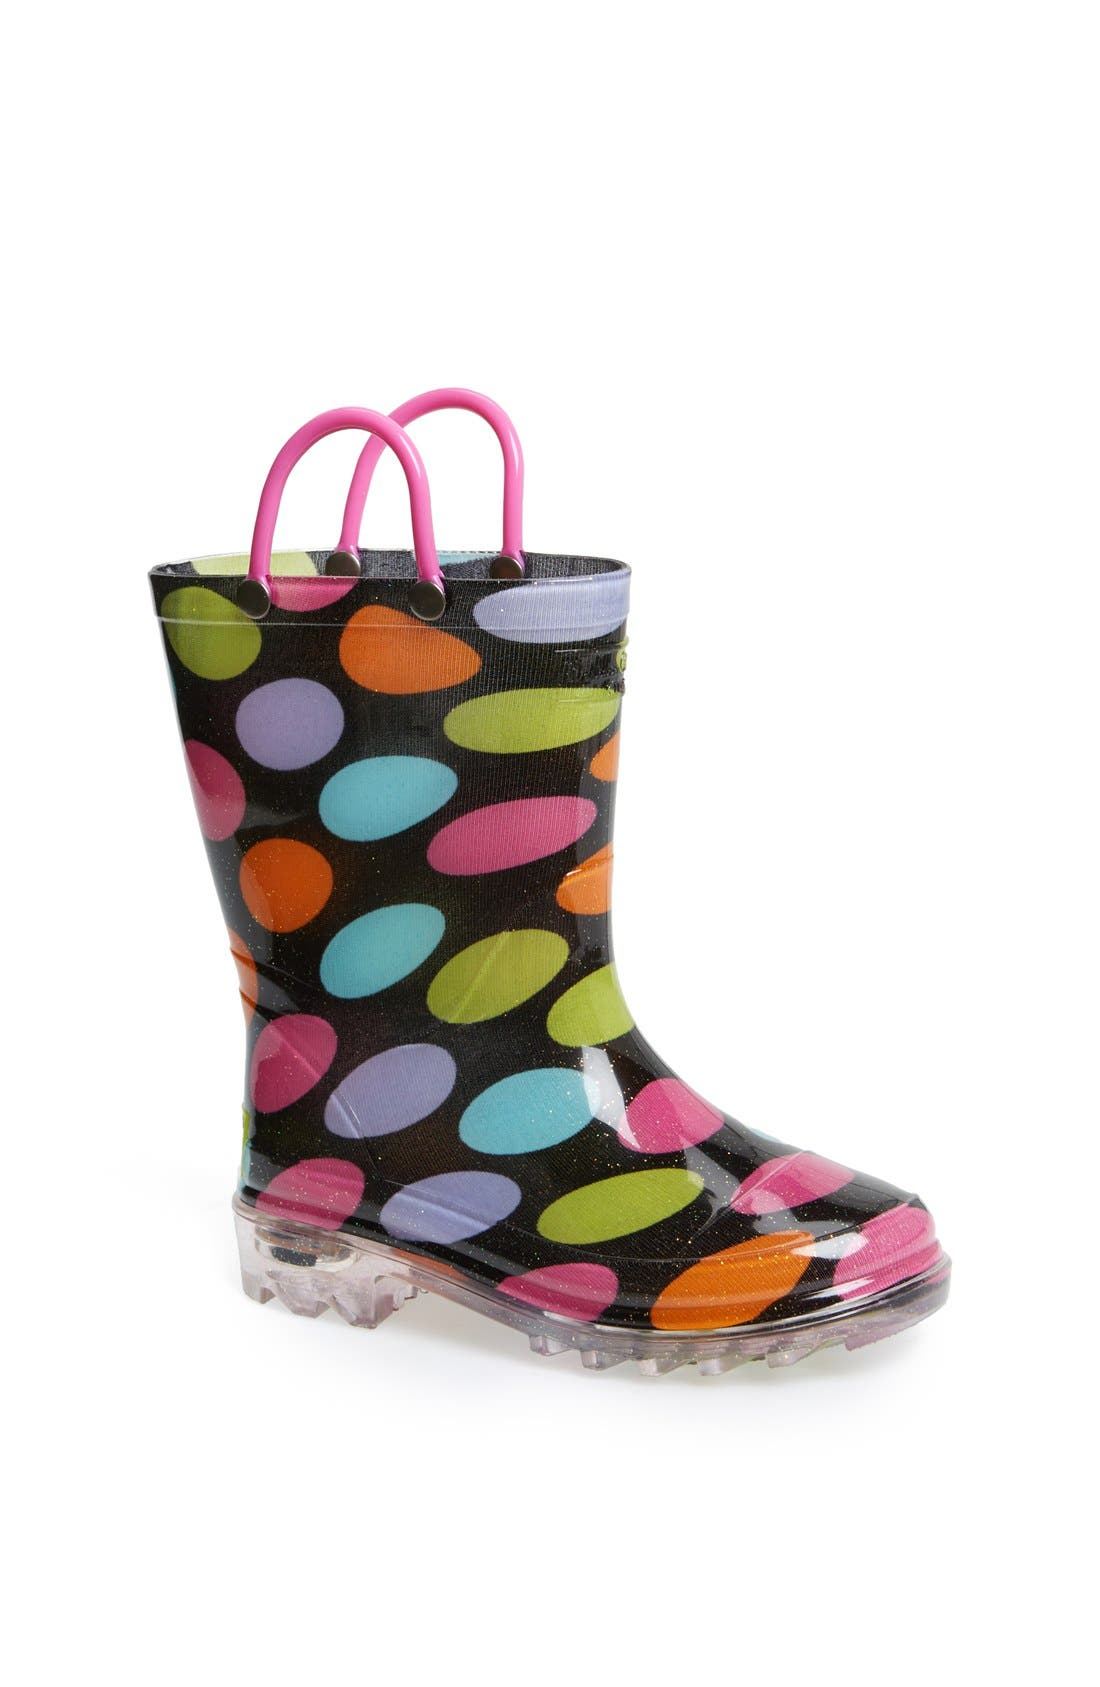 Main Image - Western Chief 'Dotty' Light Up Rain Boot (Toddler & Little Kid)